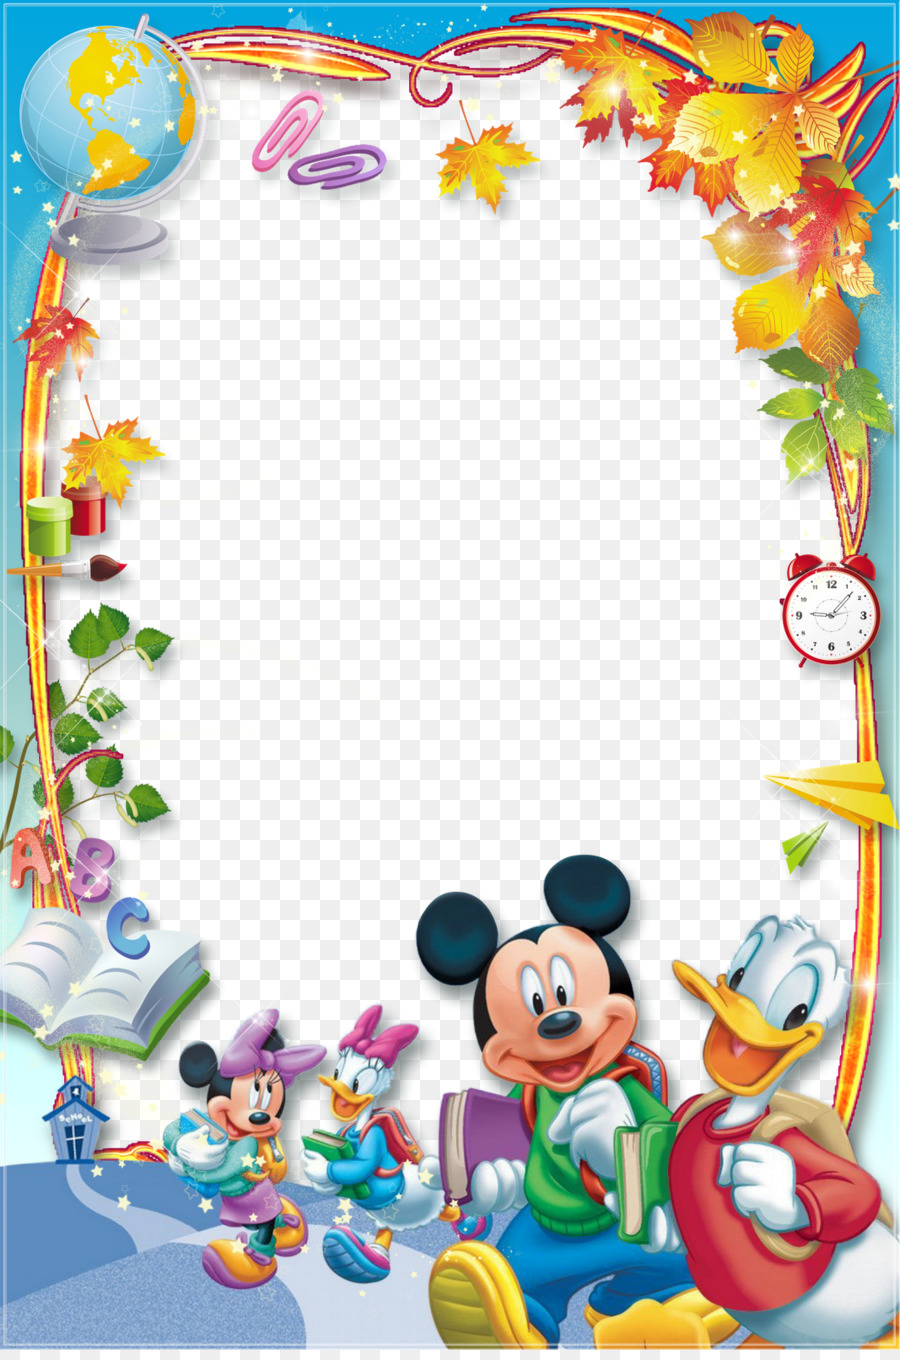 Mickey Mouse Minnie Mouse Daisy Duck Donald Duck Picture Frames